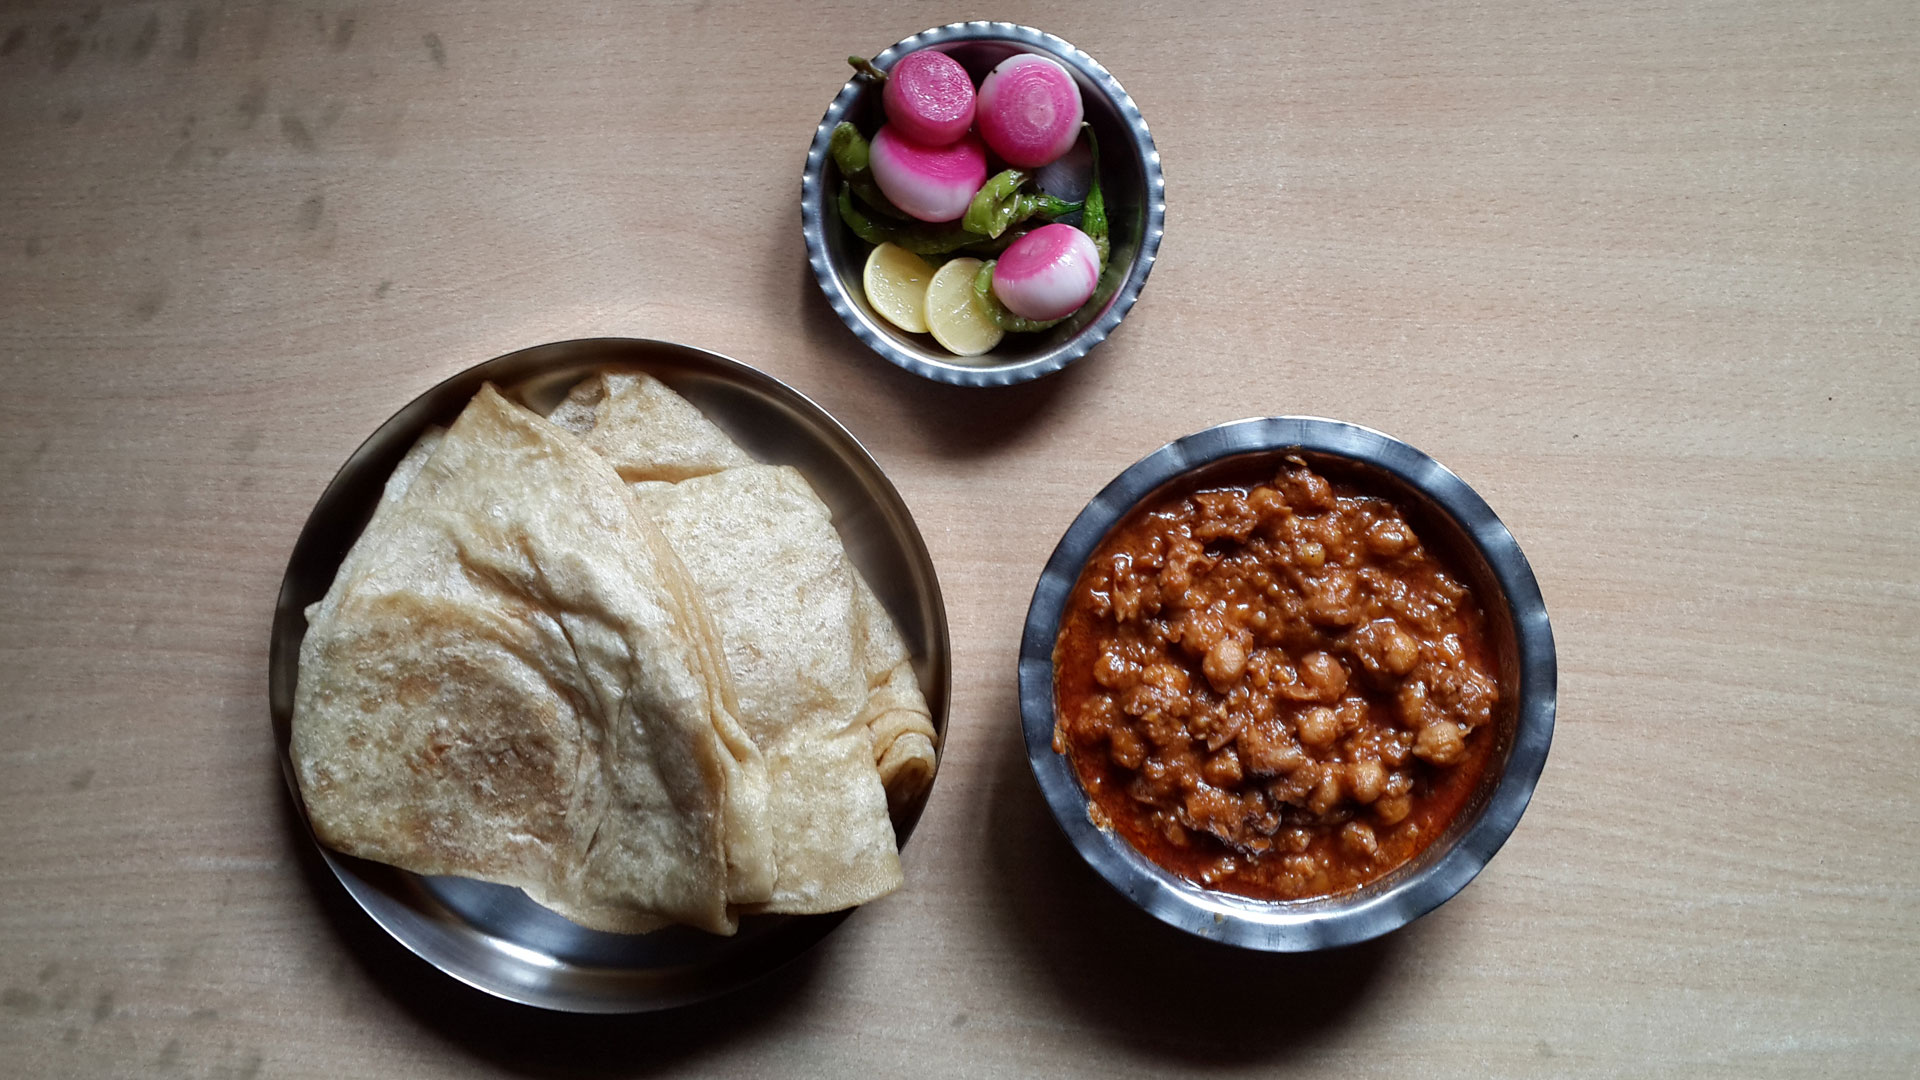 The famous chana puri from Havmor's in Ahmedabad